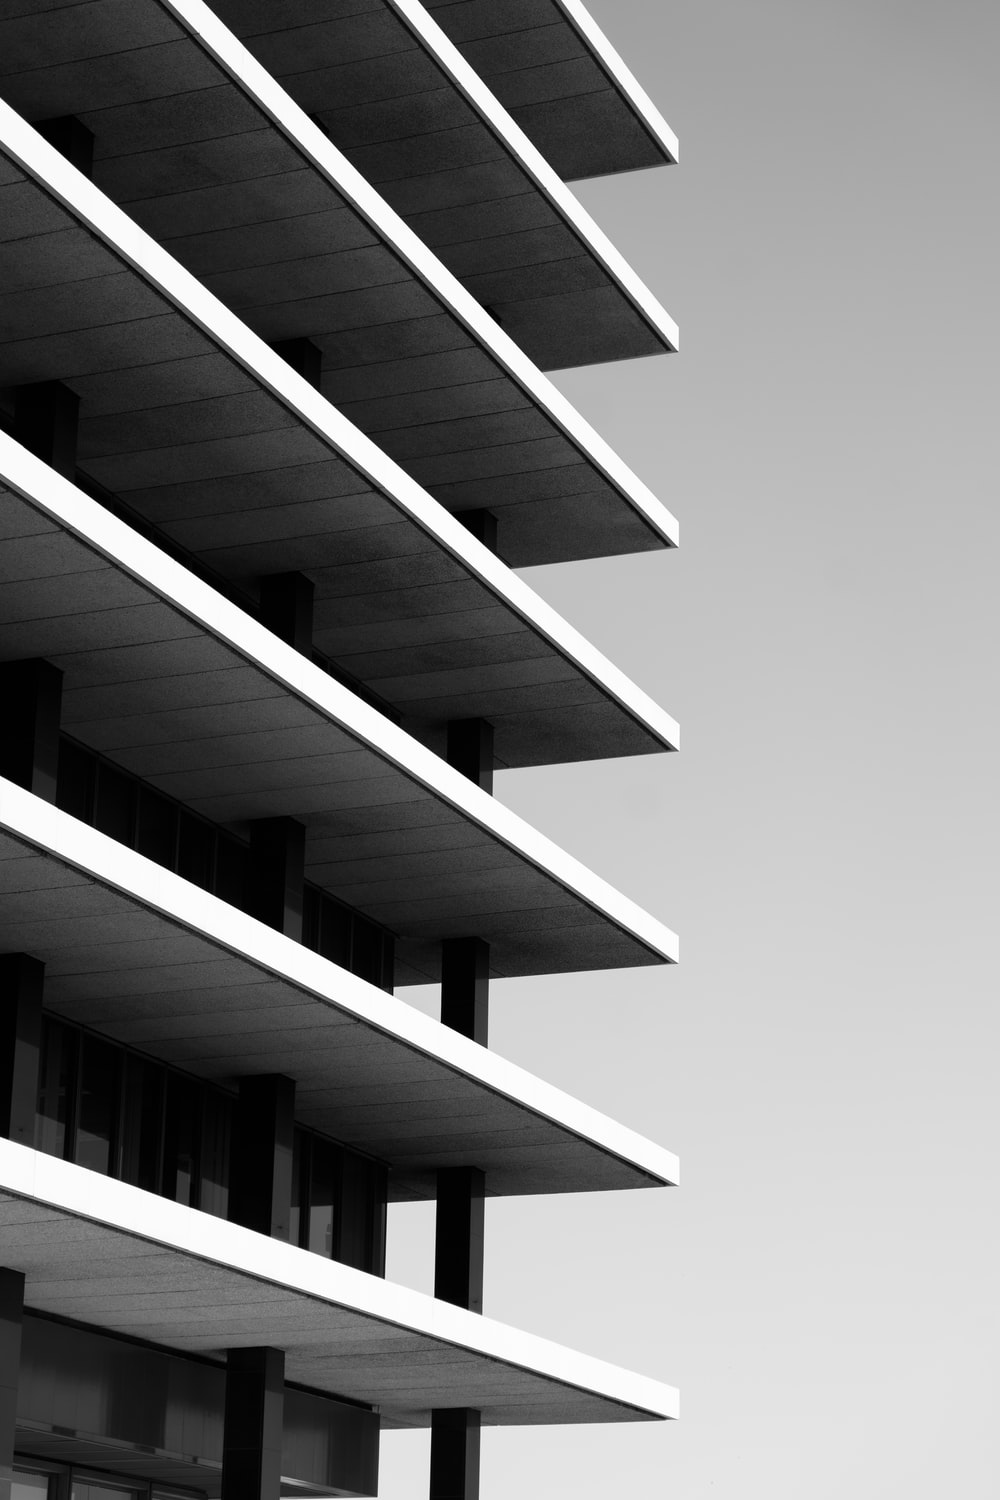 greyscale photo of high rise building